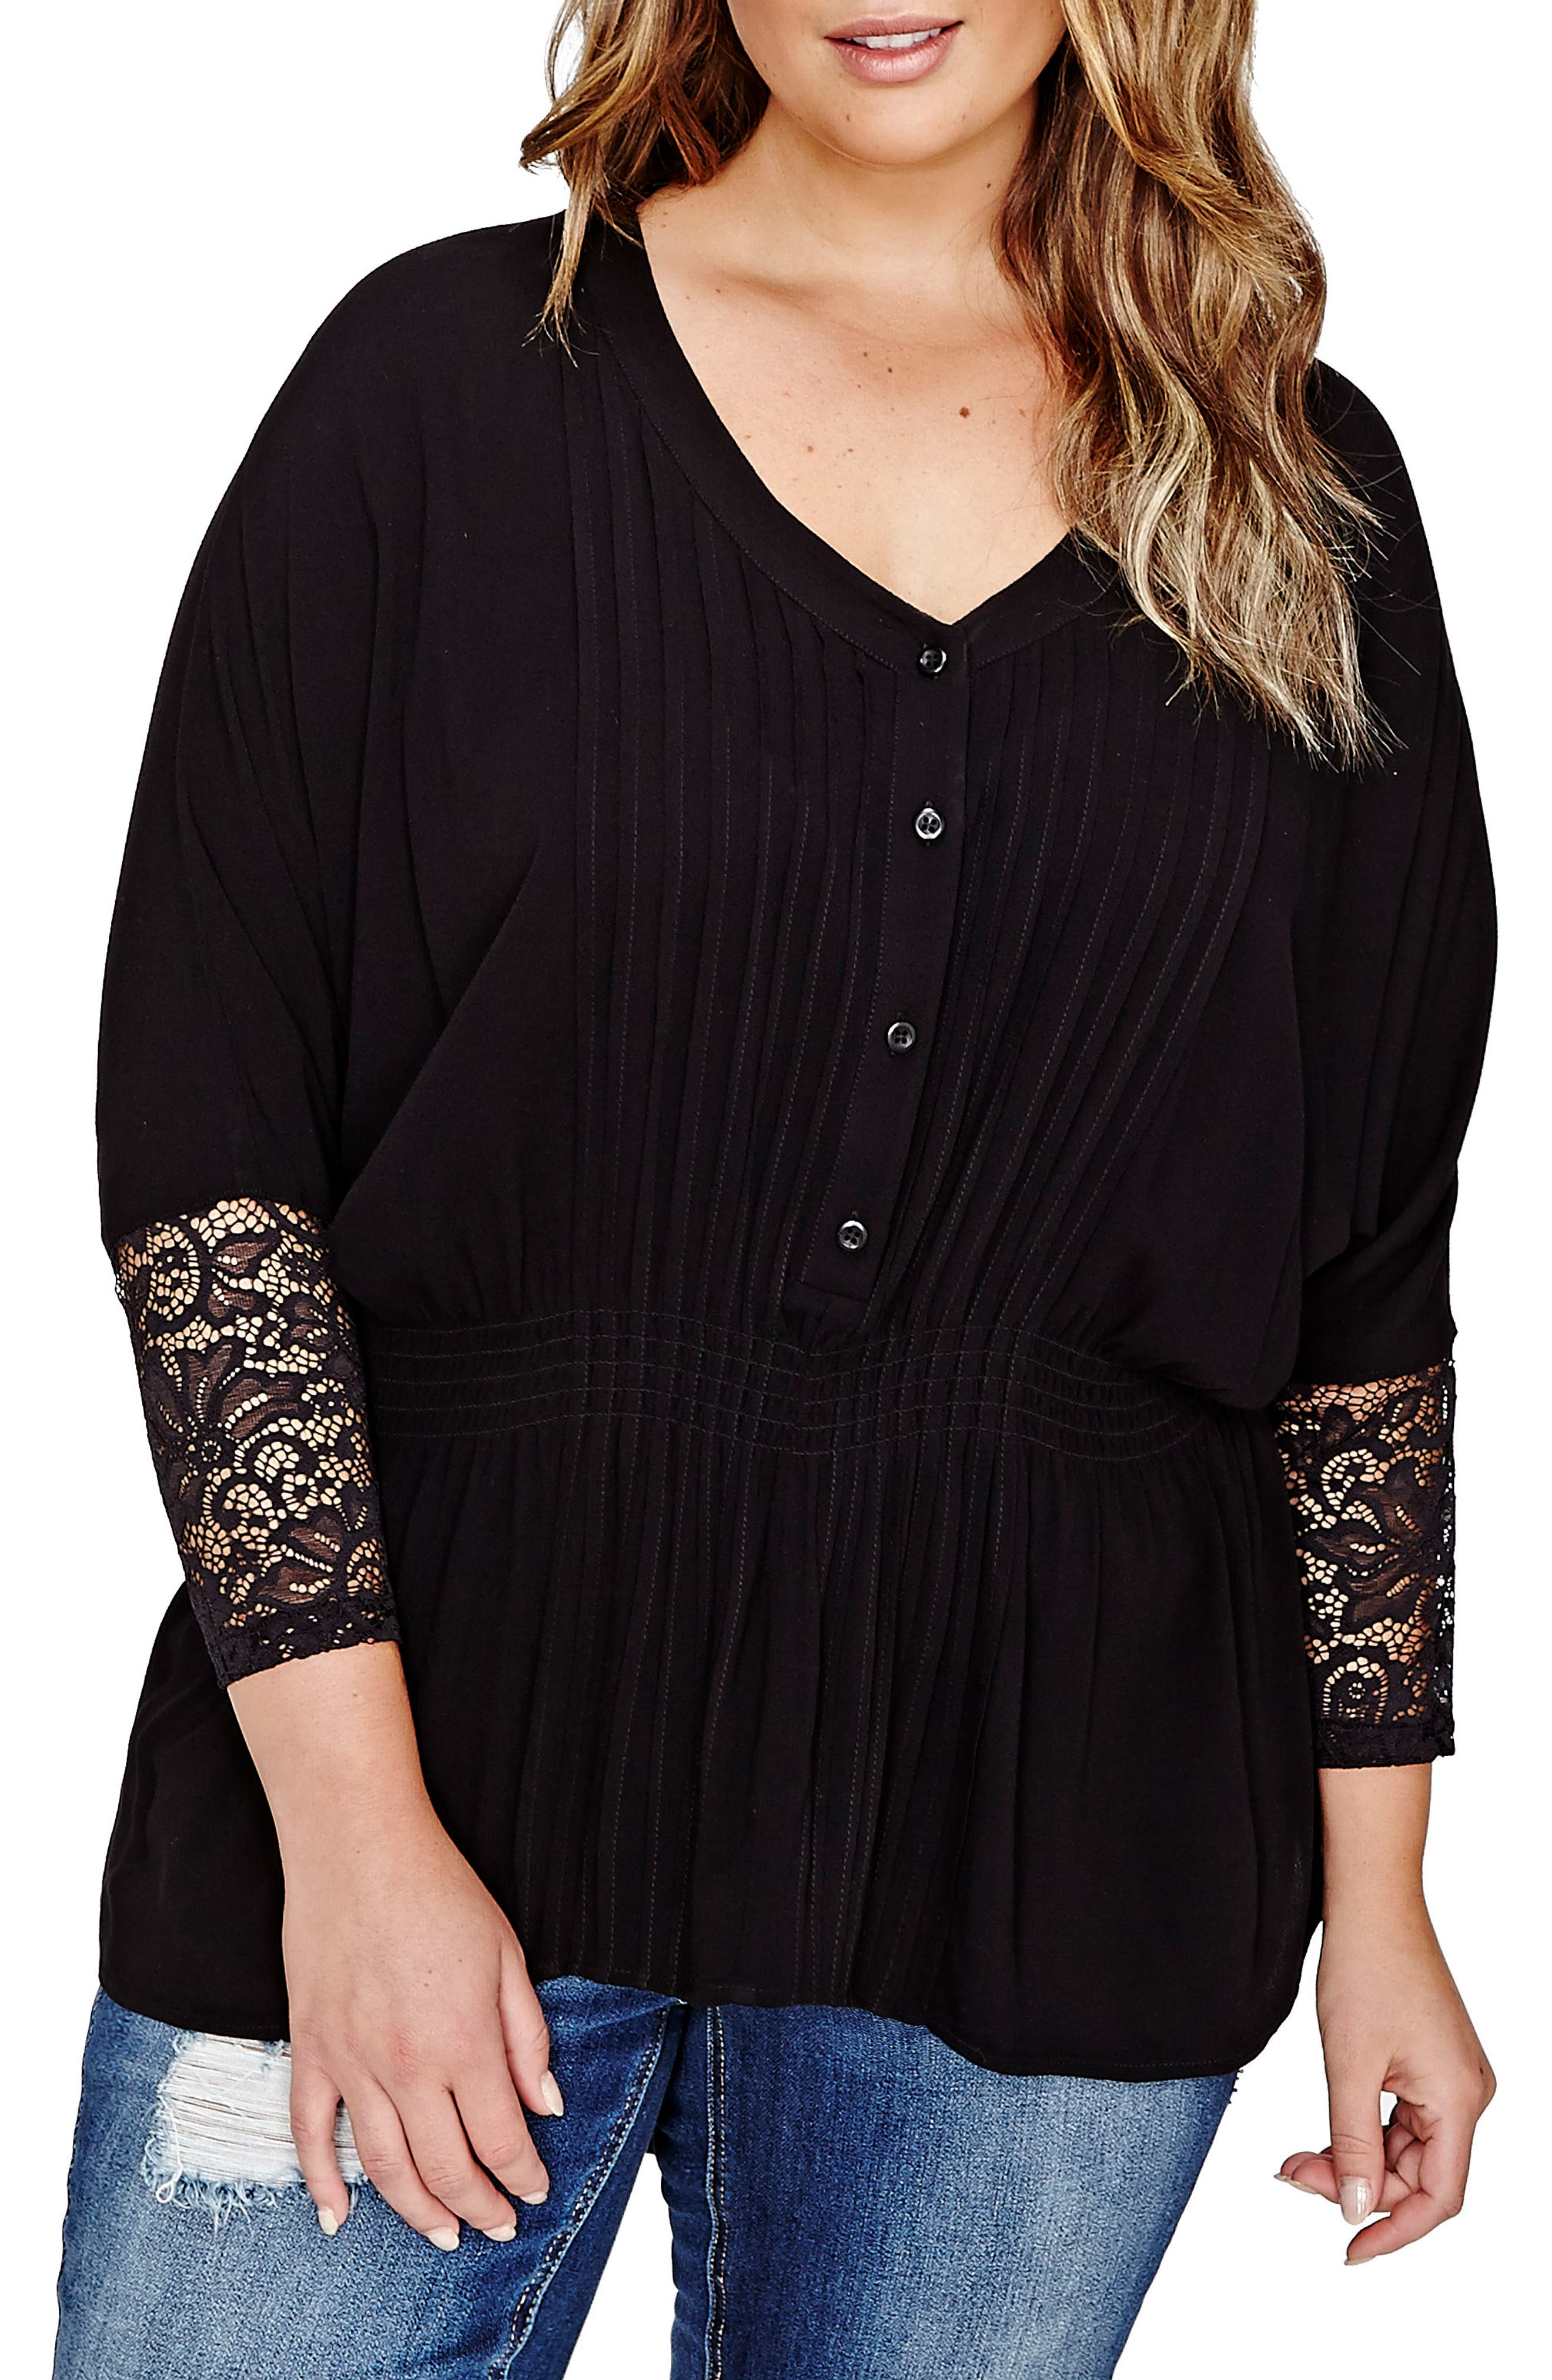 Main Image - ADDITION ELLE LOVE AND LEGEND Pleated High/Low Dolman Blouse (Plus Size)